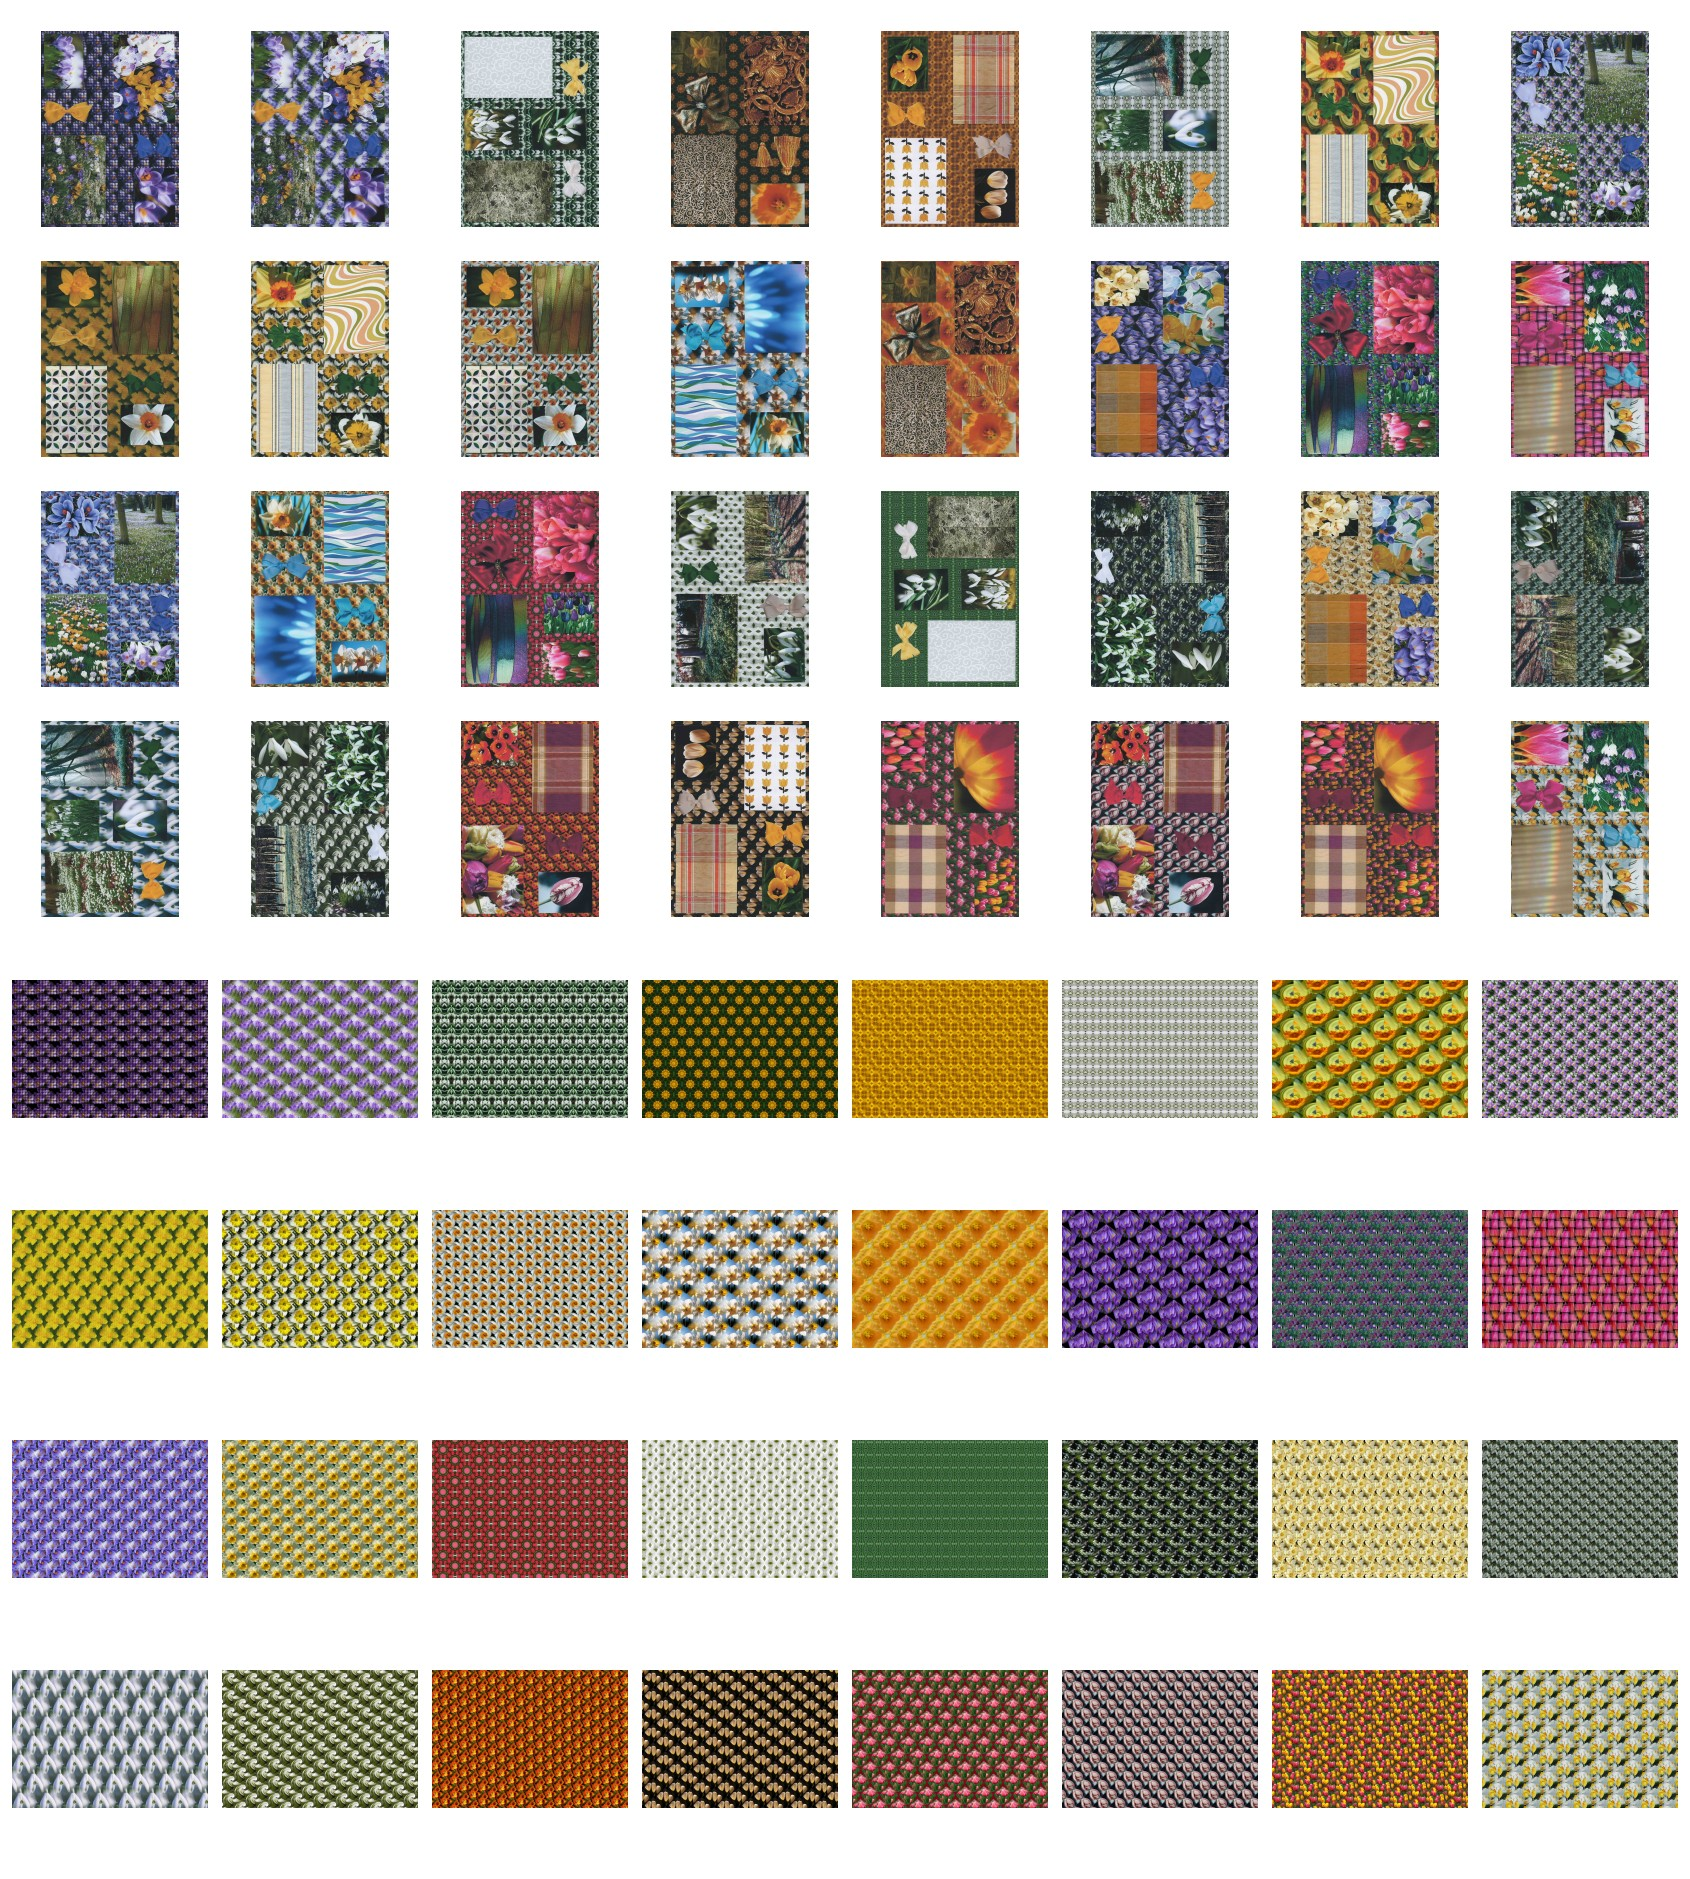 64 x A4 Assorted Springtime All-in-One Sheets DOWNLOAD